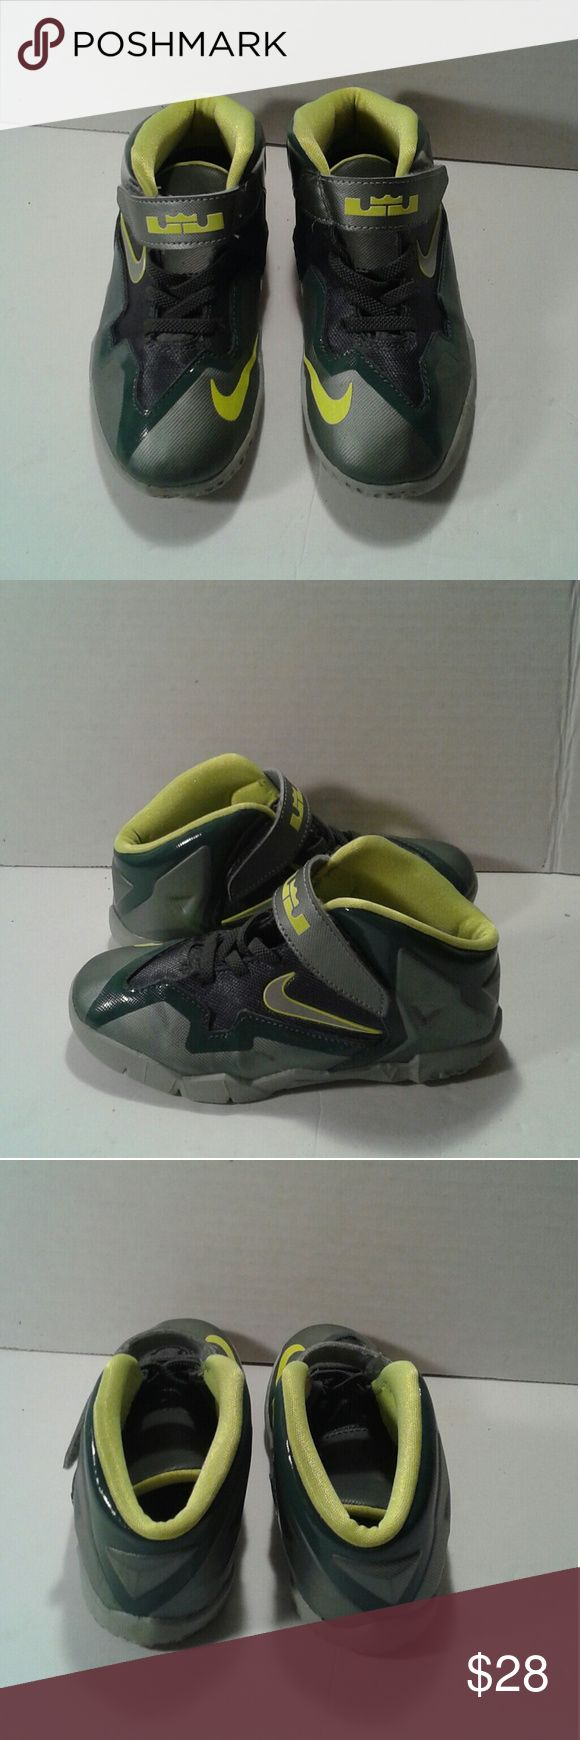 Nike LeBron James shoe's boys size 10c This is a used pair of Nike LeBron James shoe's boys size 10c ( toddler ), they are green and neon yellow leather shoe's. They have velcro straps. they are in great used condition. Please view the pictures and if you have any questions please ask. Nike LeBron James  Shoes Sneakers